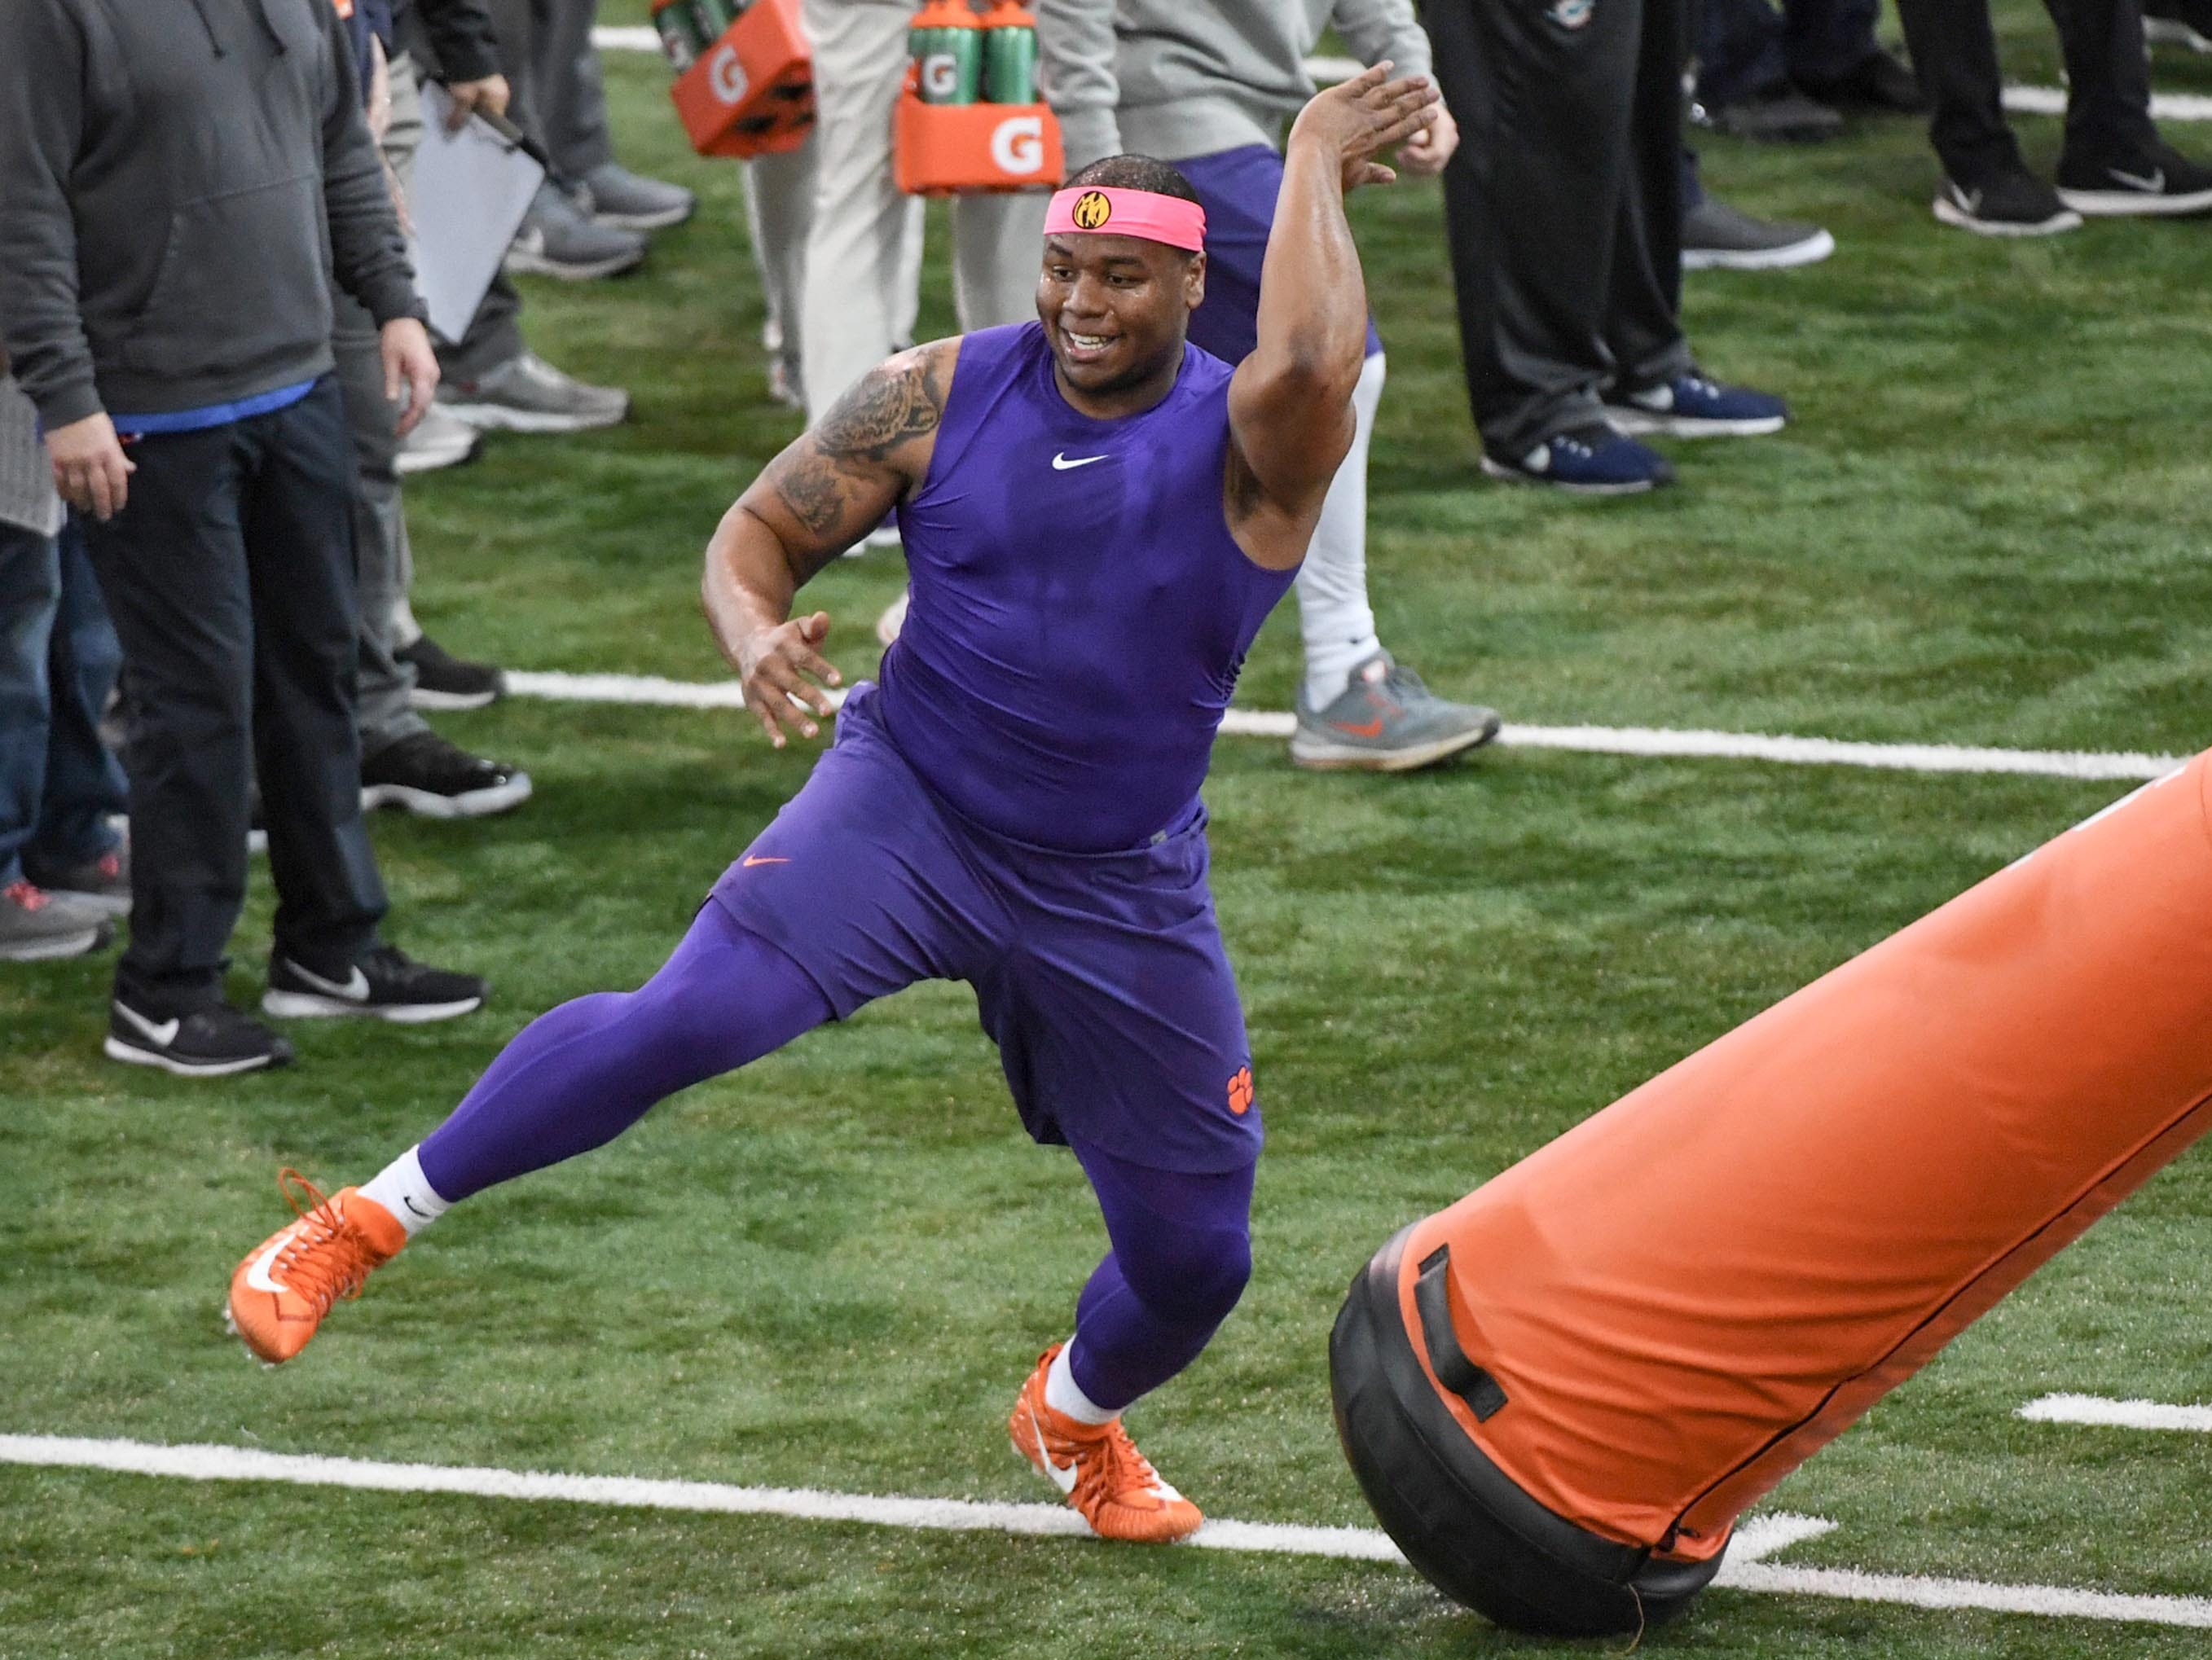 Defensive lineman Dexter Lawrence shows skills to scouts during Clemson pro day at the Poe Indoor Facility in Clemson Thursday, March 14, 2019.